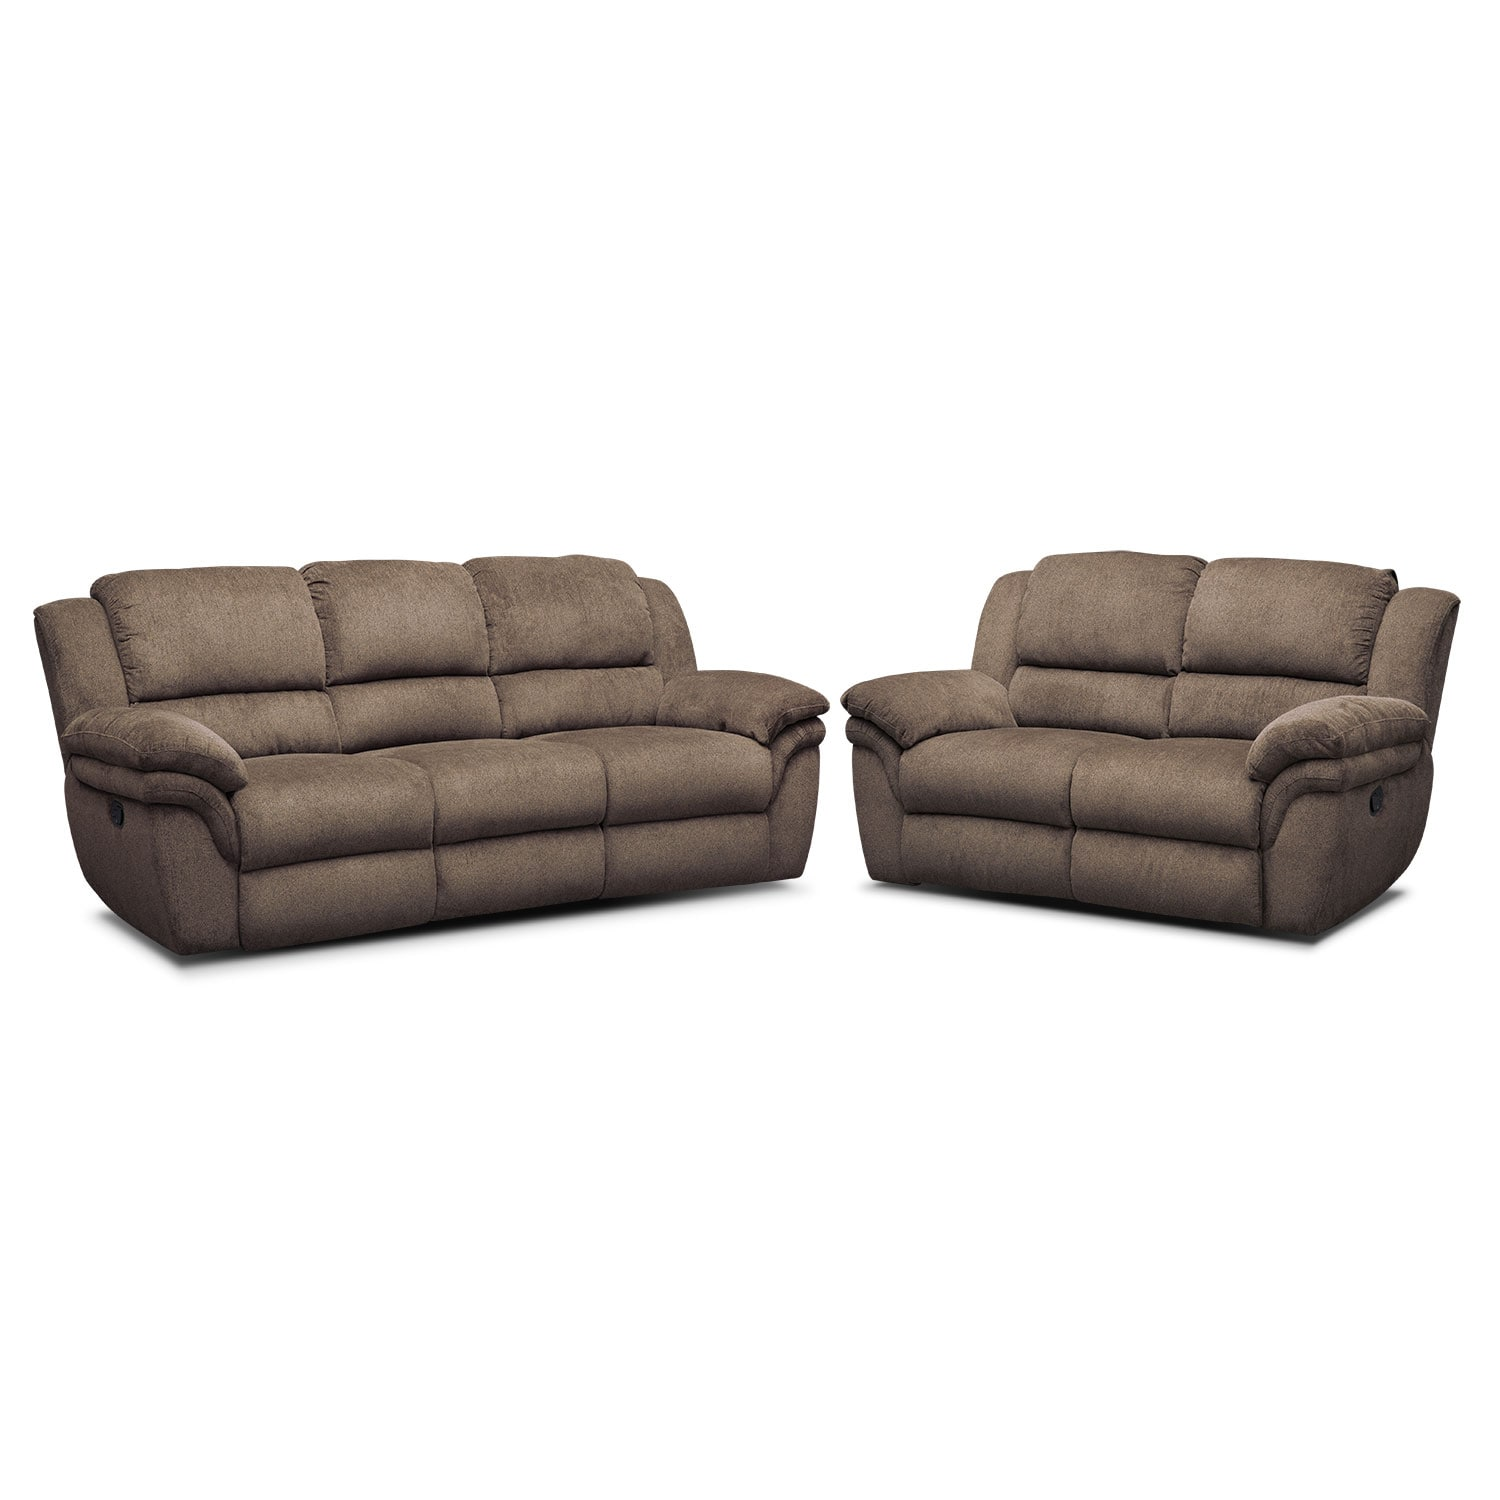 Aldo Manual Reclining Sofa and Loveseat Set Mocha